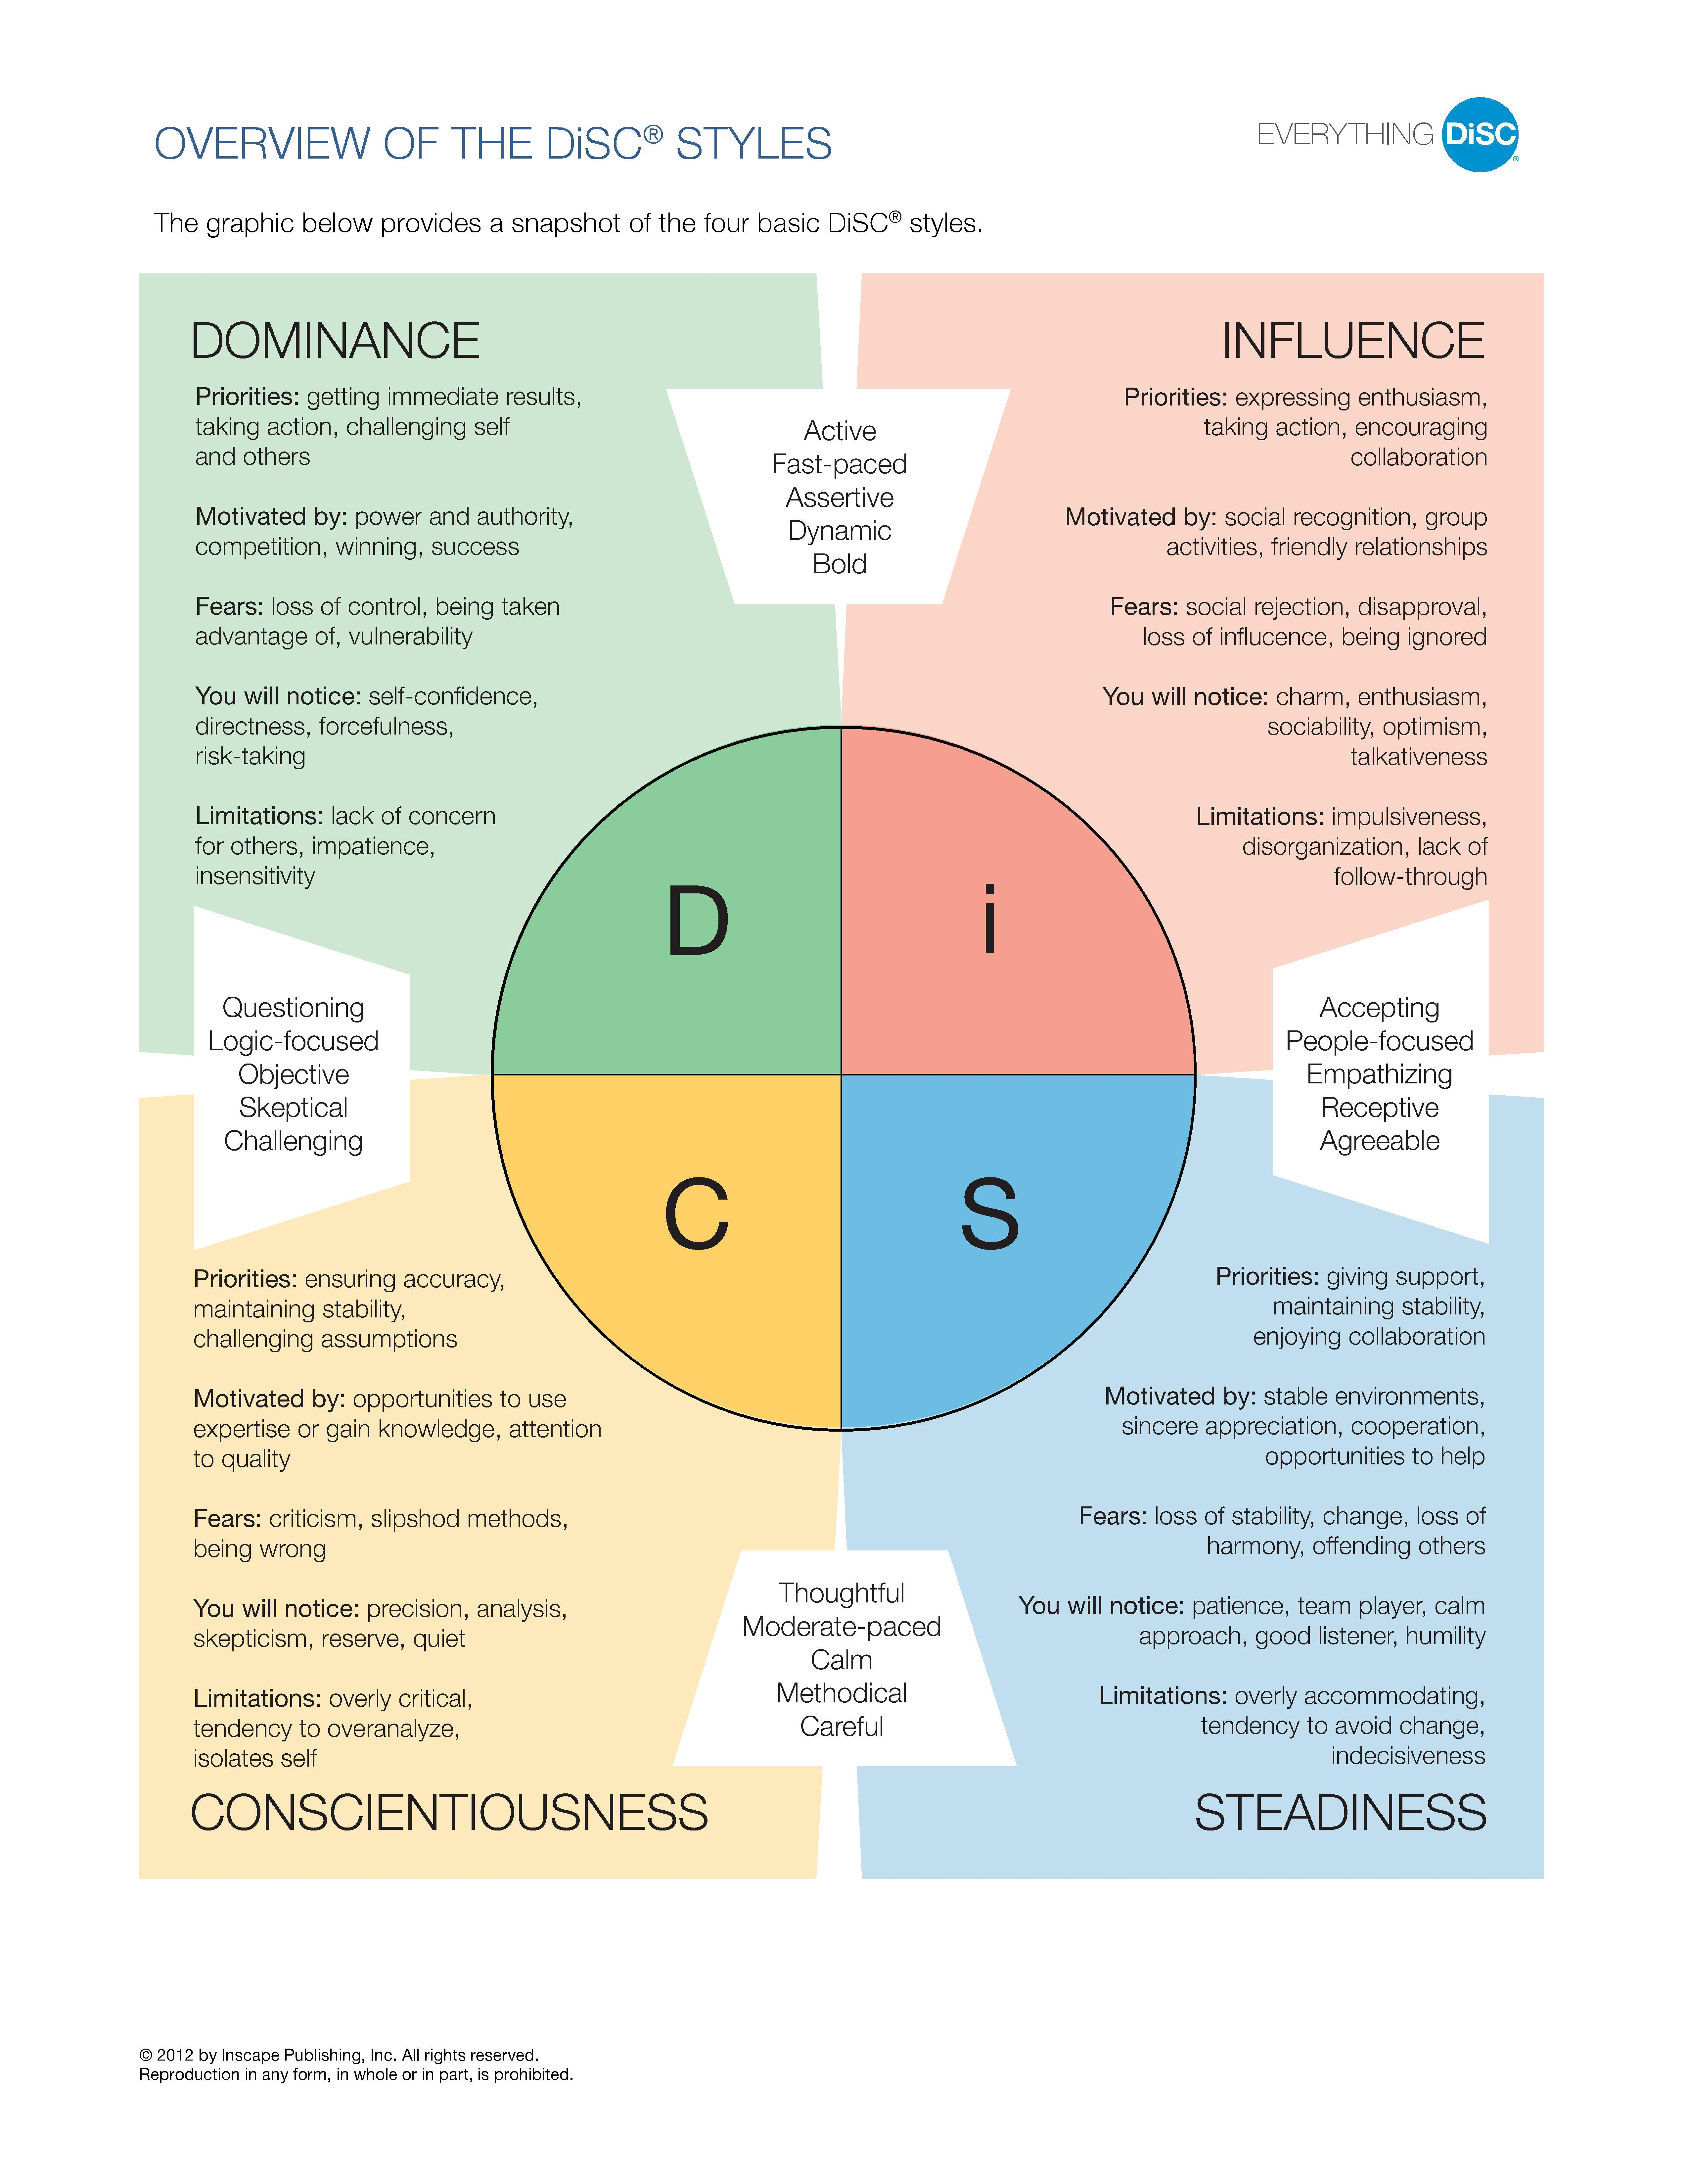 DiSC Assessment Styles Overview